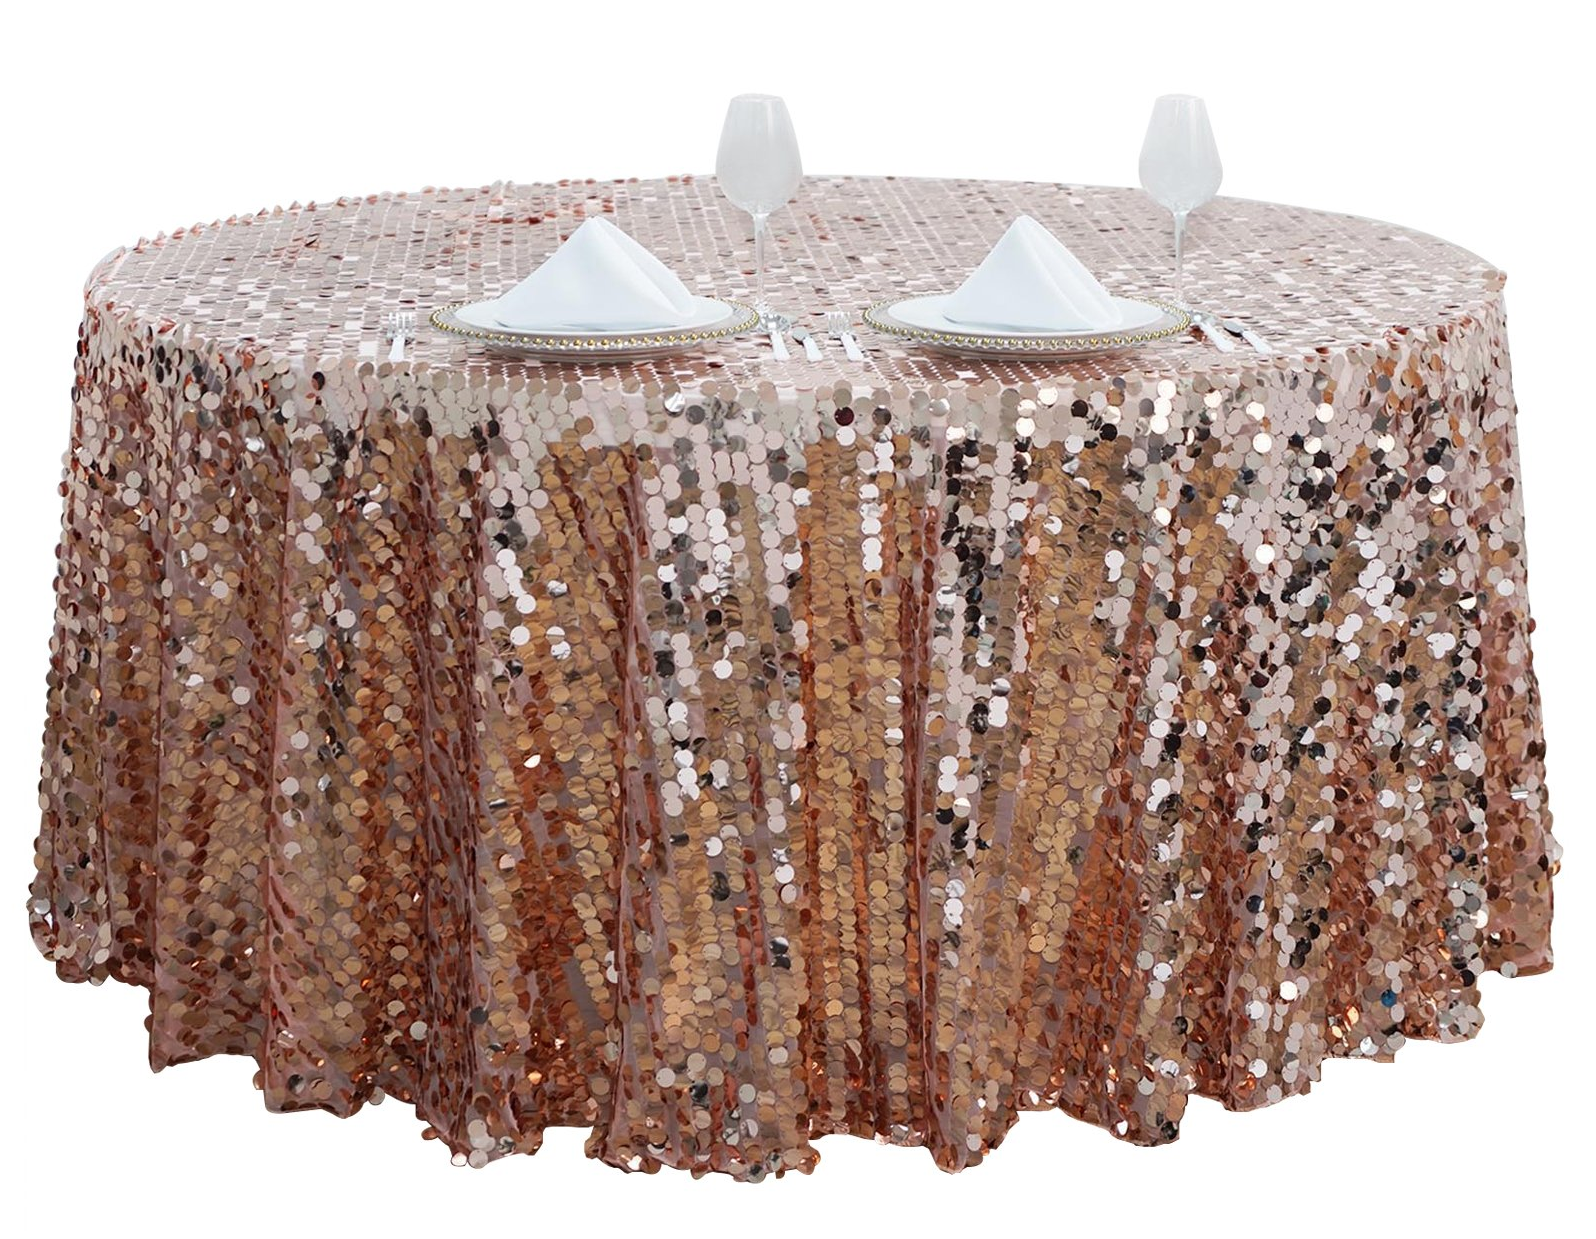 Bling wedding receptions Sequin Tablecloth for Wedding Reception Table Linens